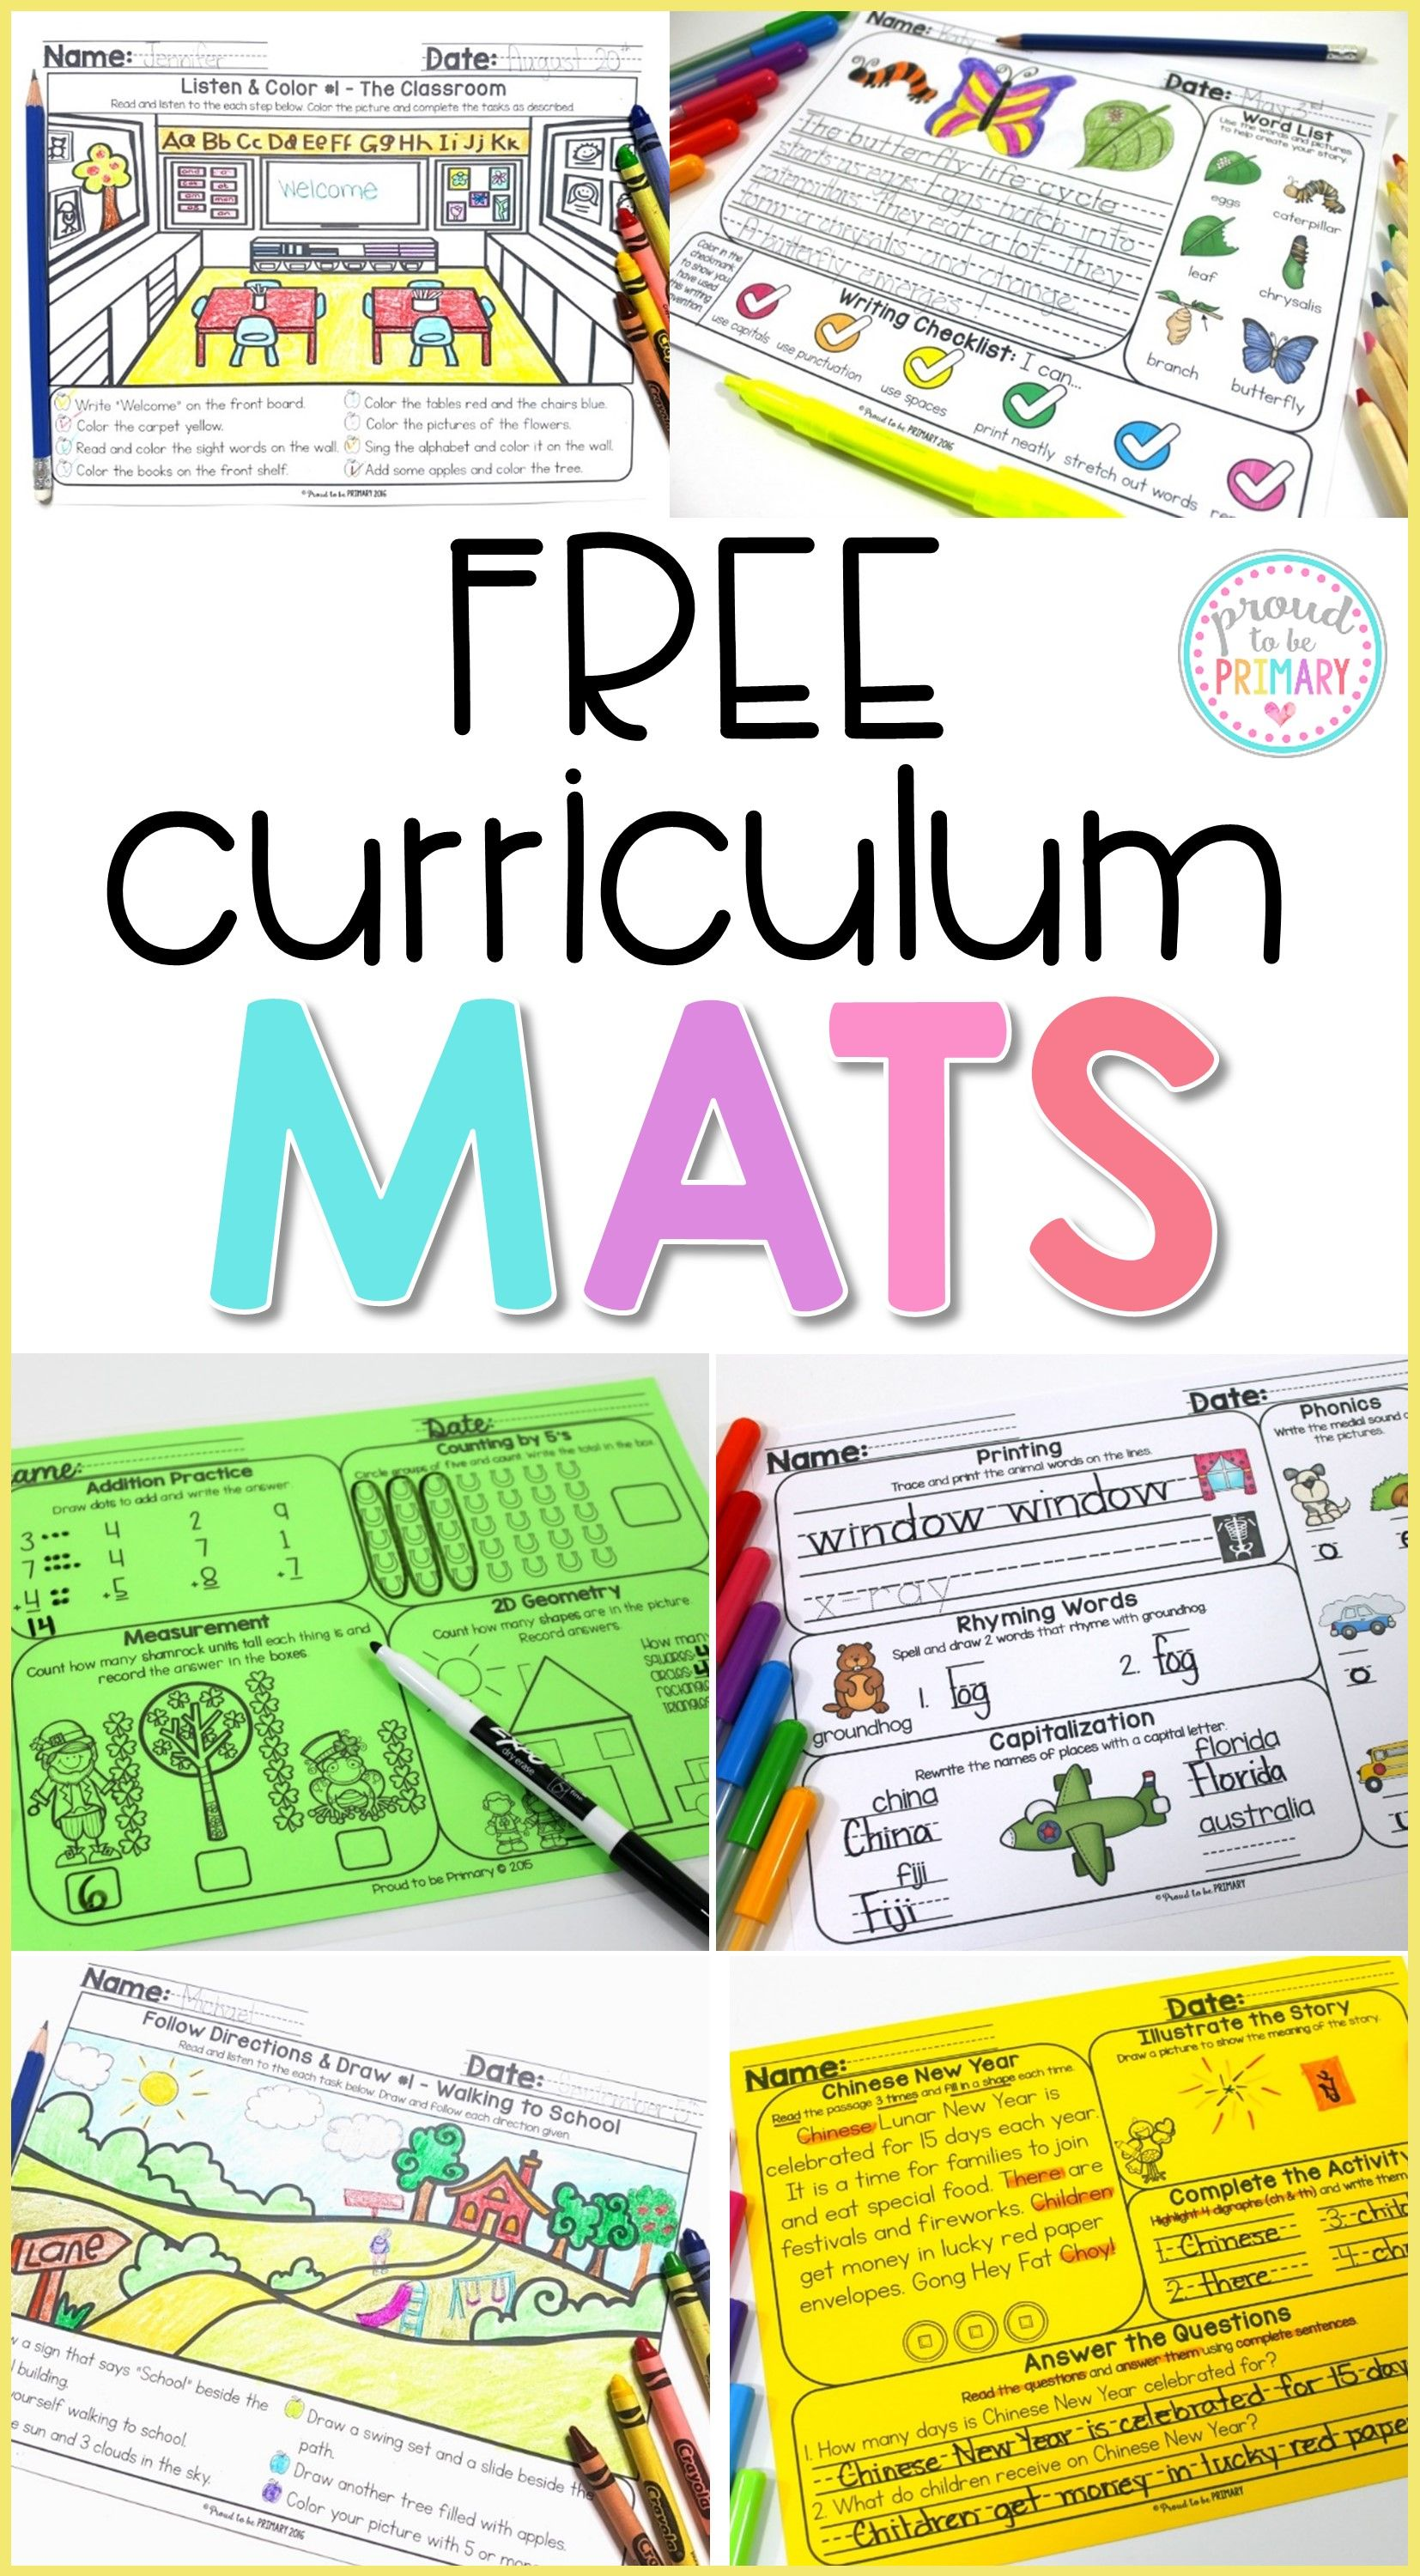 Grab The Free Curriculum Mats To Practice And Build Writing Listening Reading Comprehension